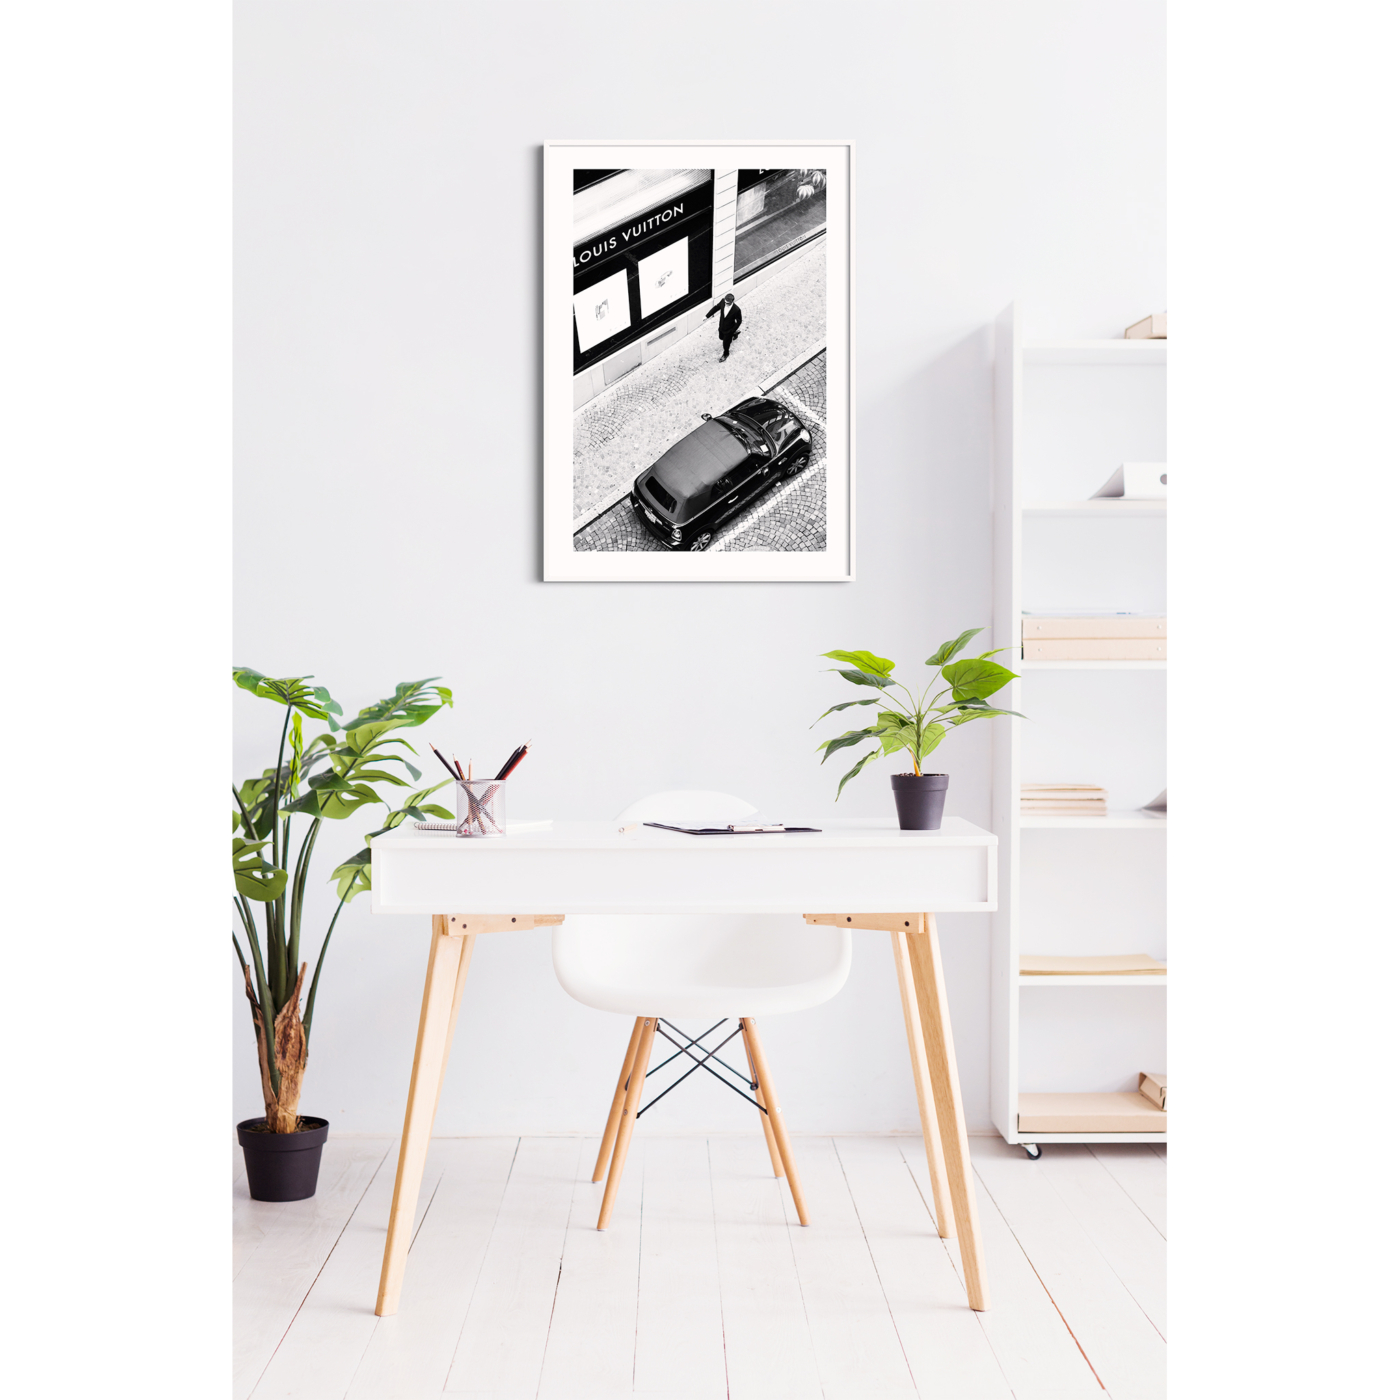 Vuitton Man black and white print with border in white frame on the wall